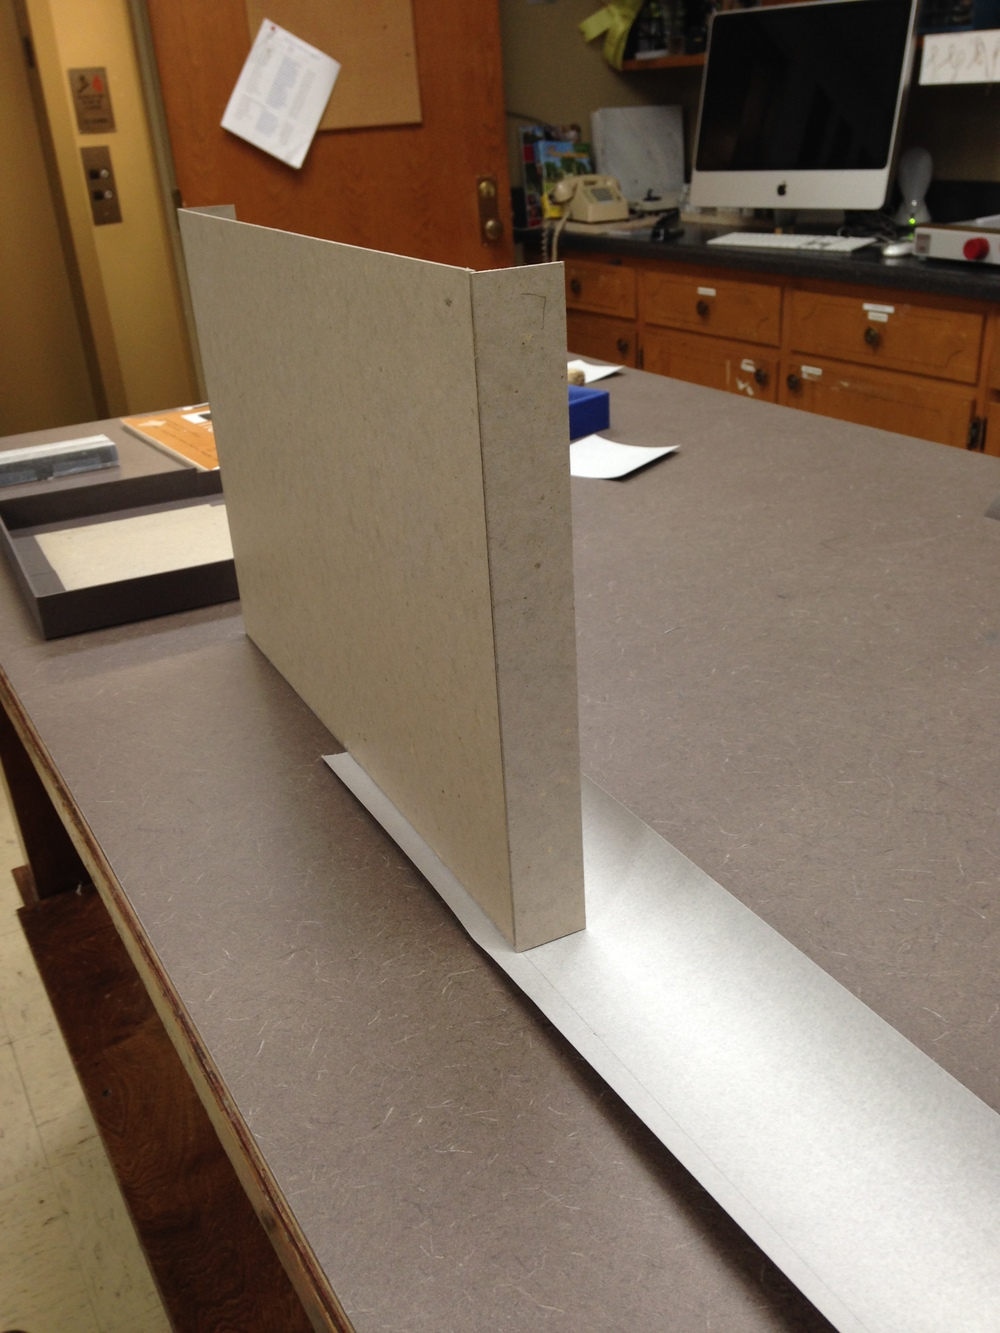 Covering the outer tray in cloth